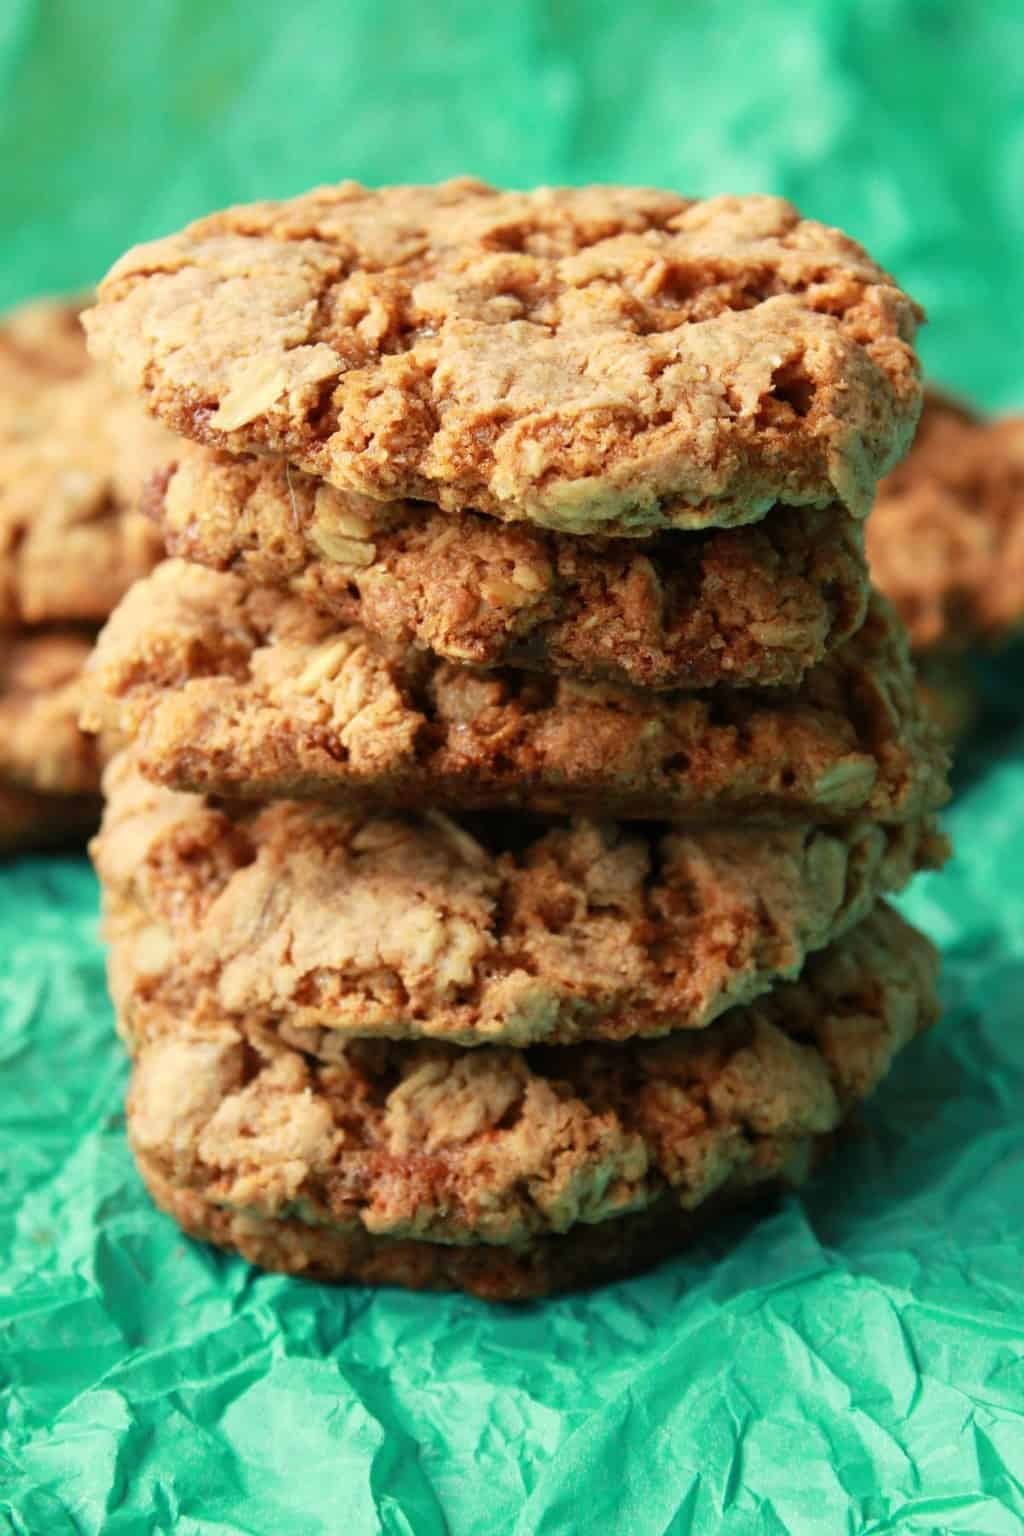 Vegan oatmeal cookies stacked up on green tissue paper.